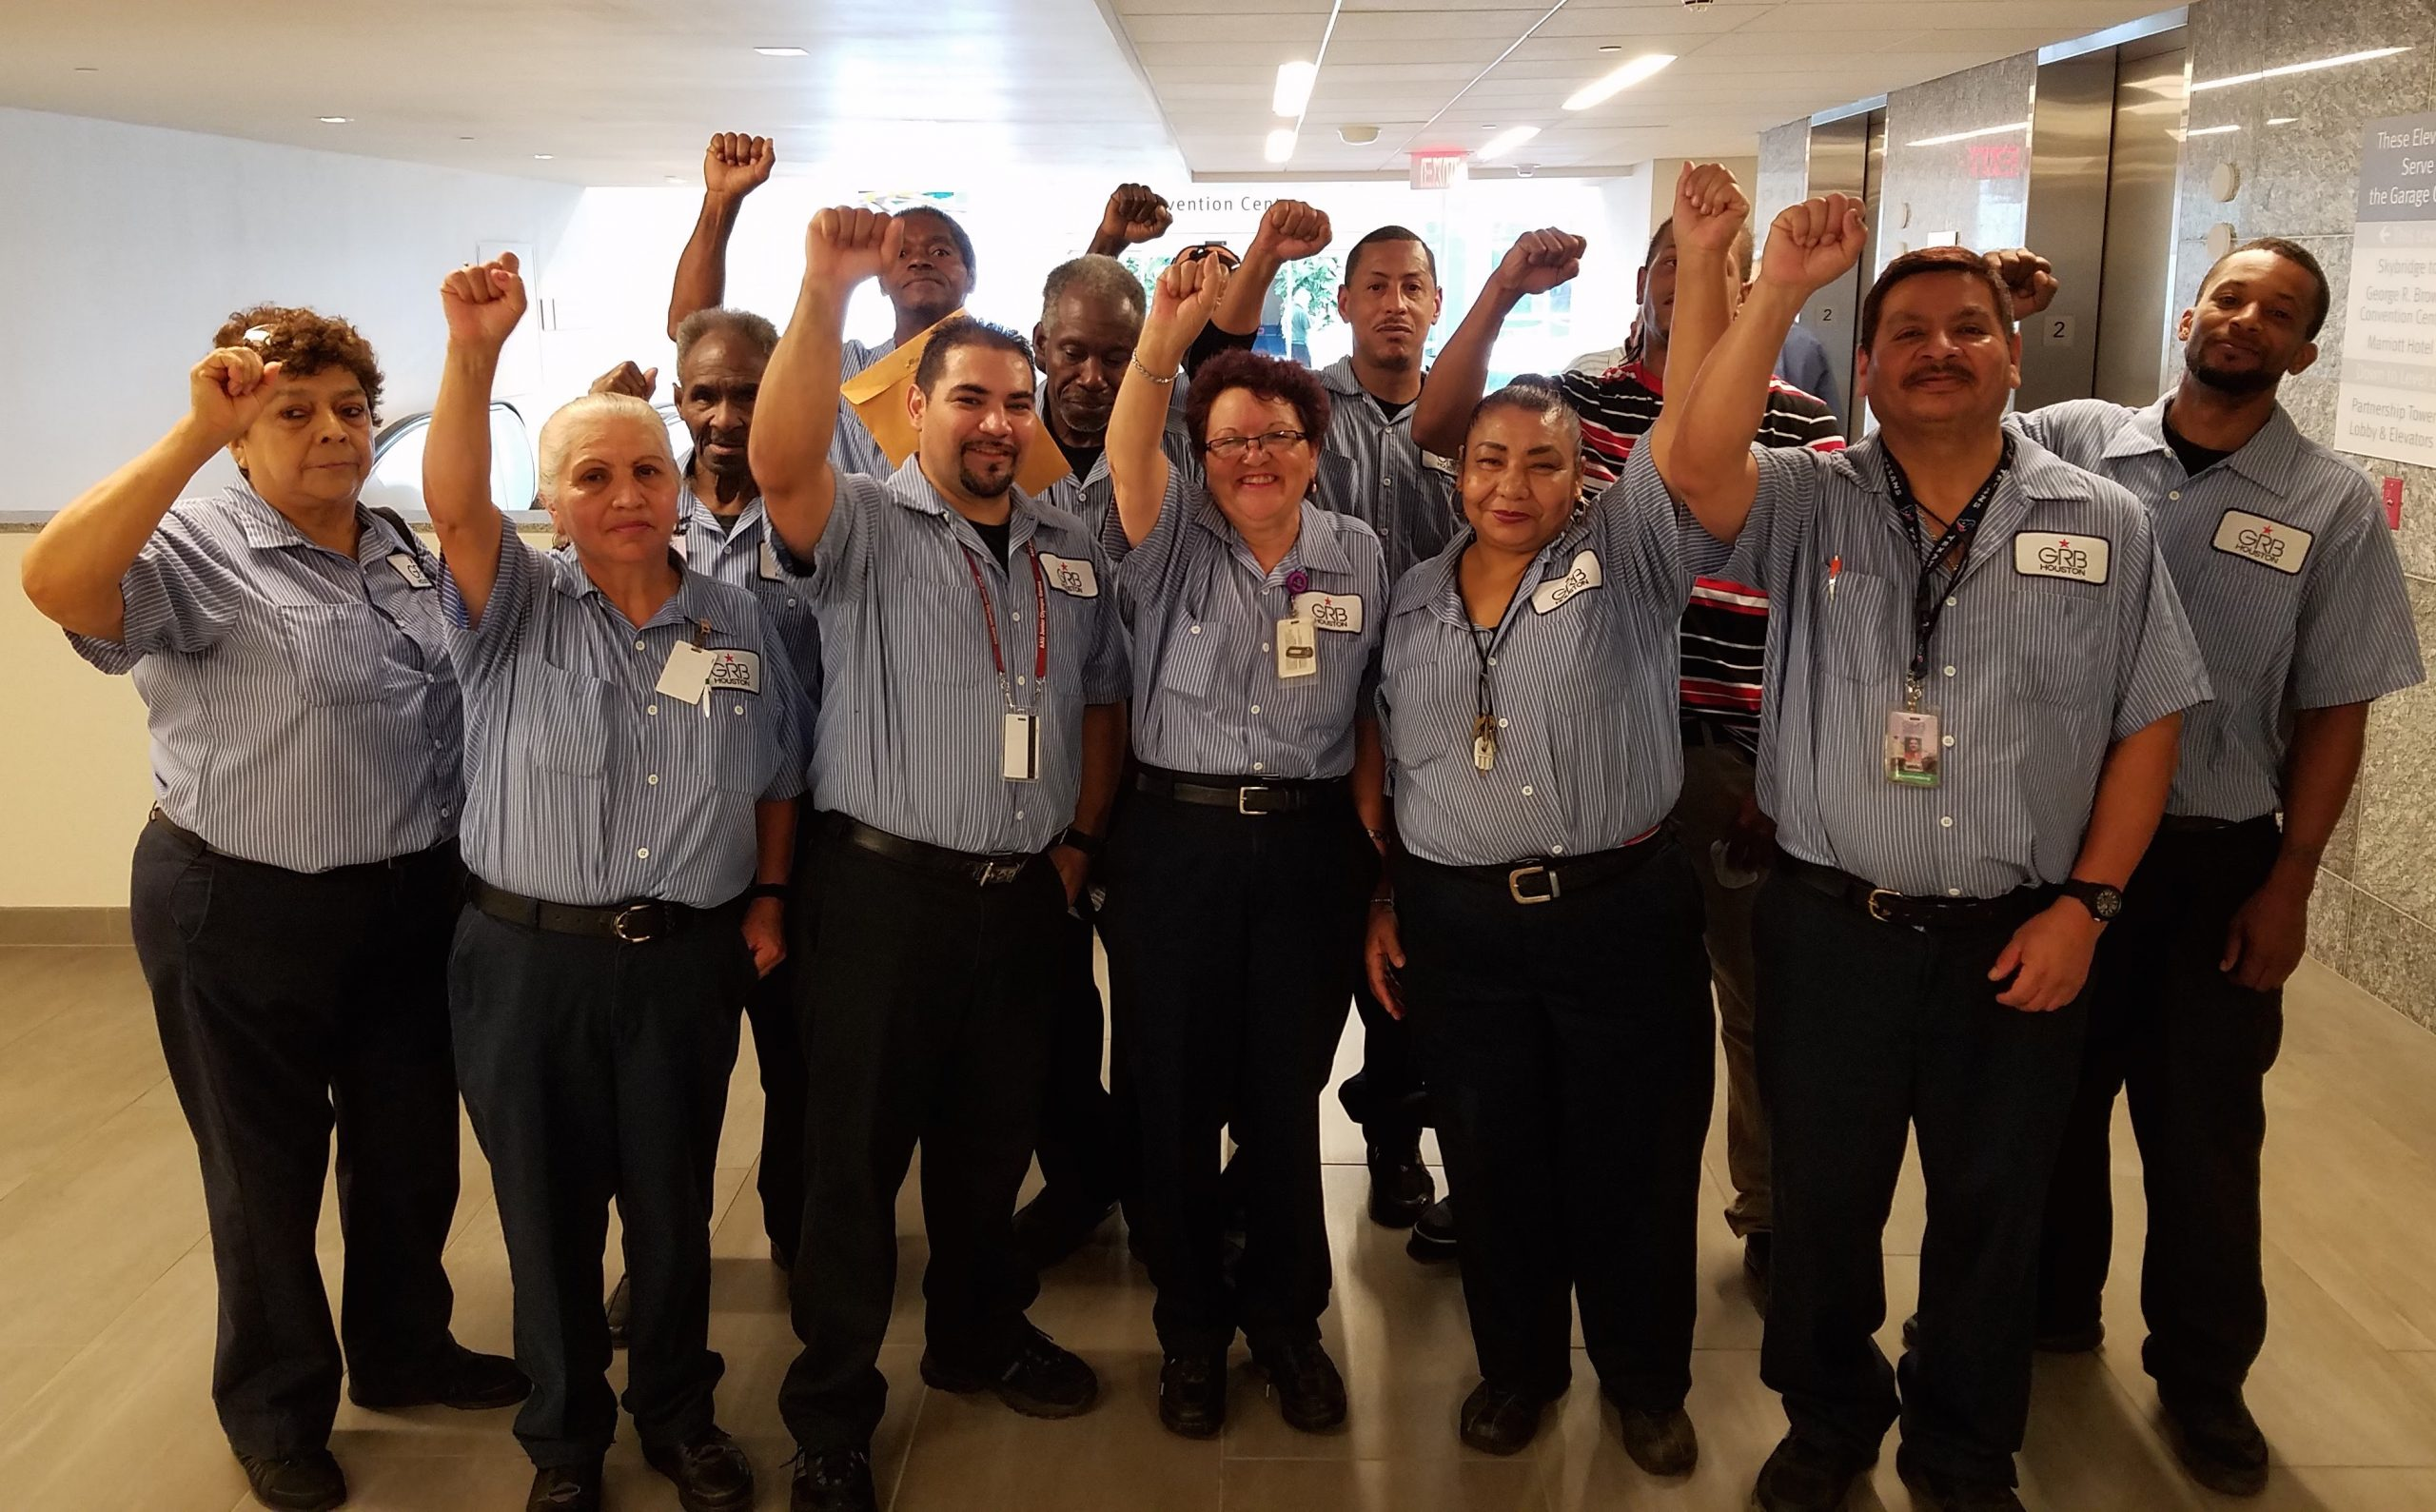 Historic! Houston Cleaning Workers Win Pathway to $12/Hour